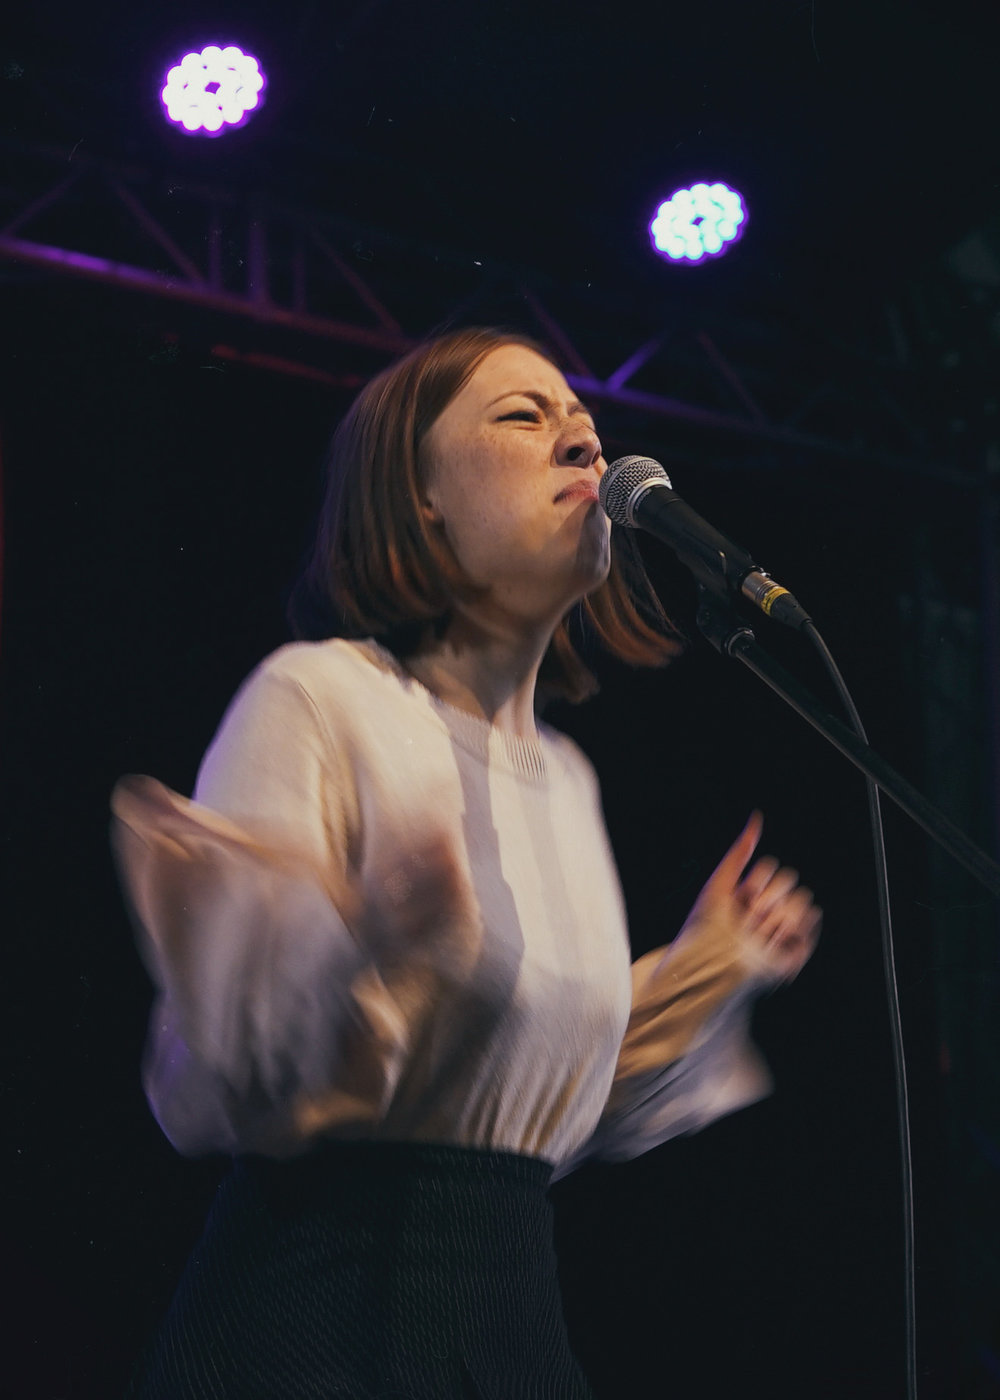 Hazel Mei at NightQuarter 2018